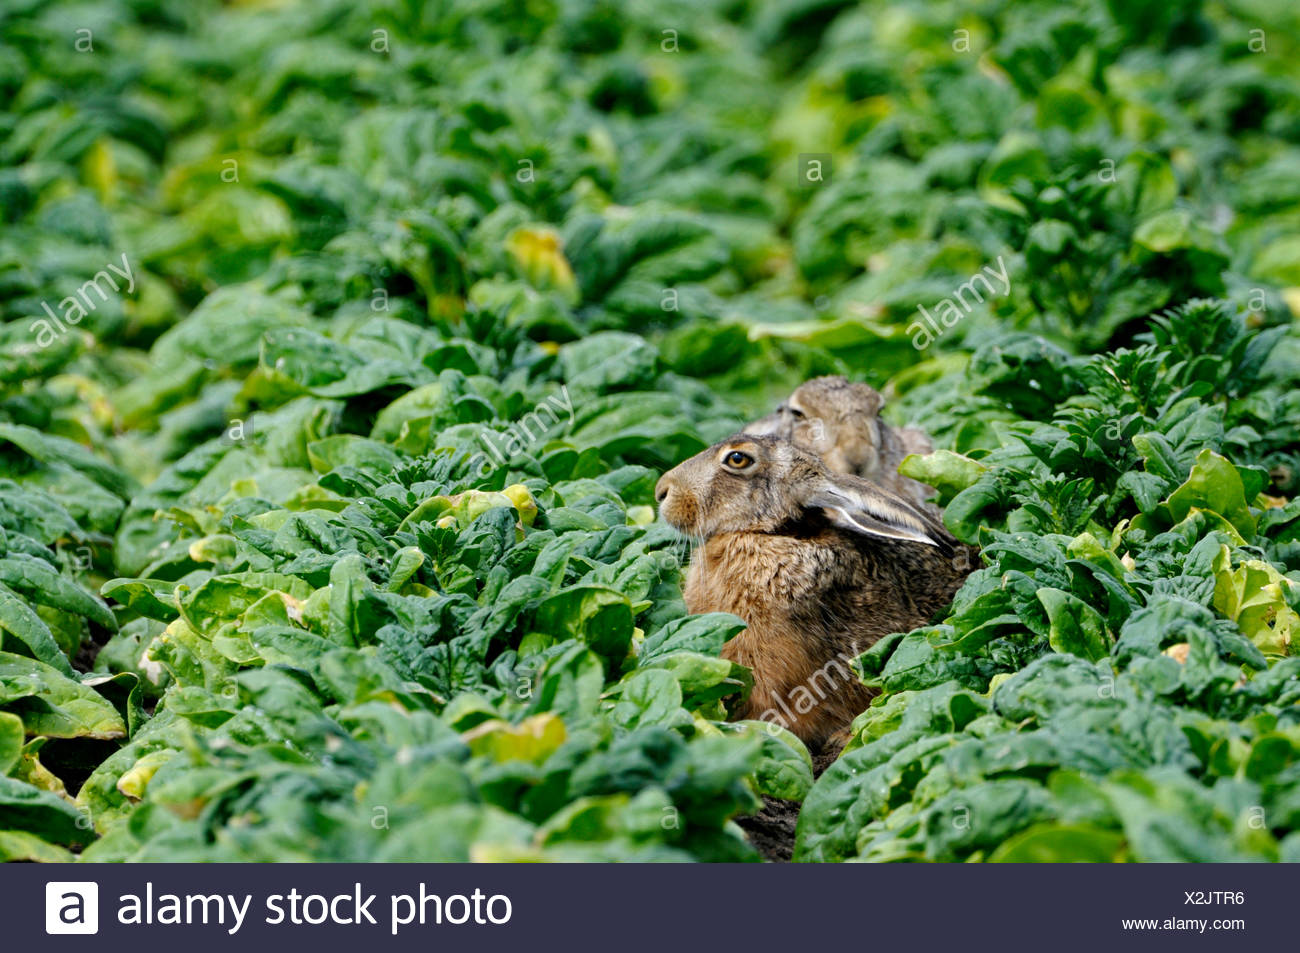 European hare (Lepus europaeus), two hares sitting hidden in a field, Netherlands - Stock Image